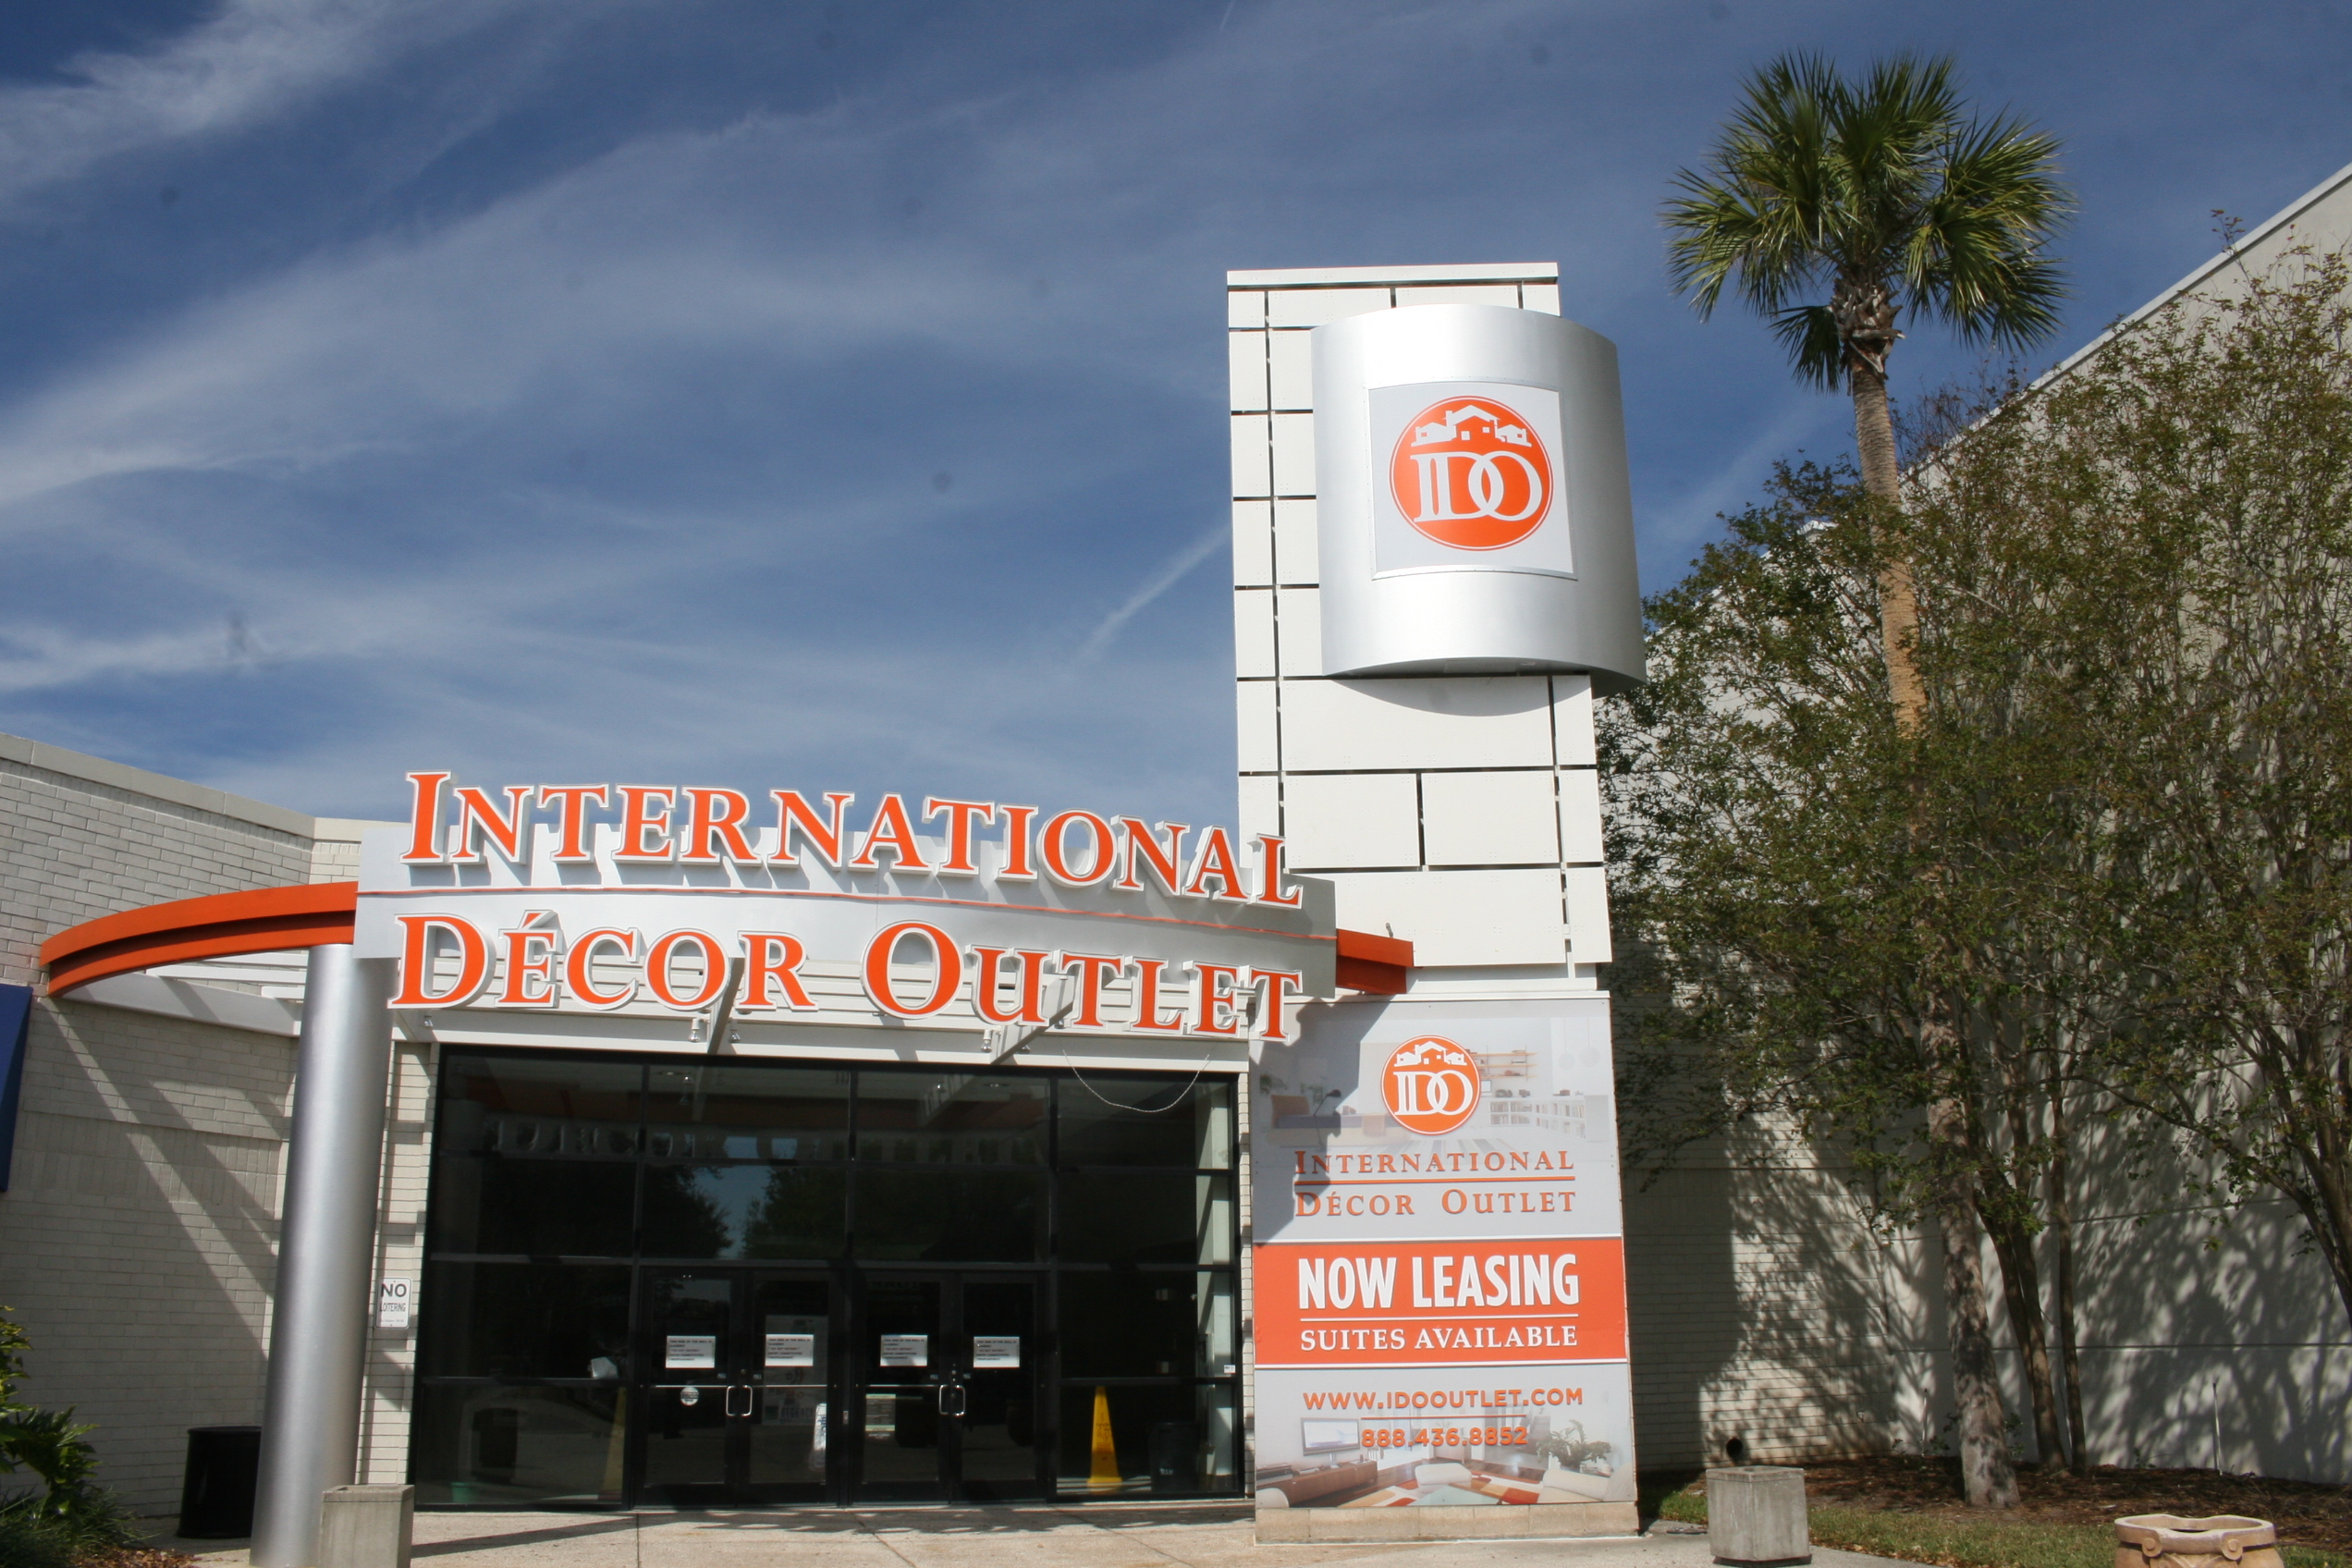 International D Cor Outlet Is Leading The Way In Direct To Consumer Marketing Of Upscale Furnishings Fixtures And Home D Cor The New Ido Florida Outlet